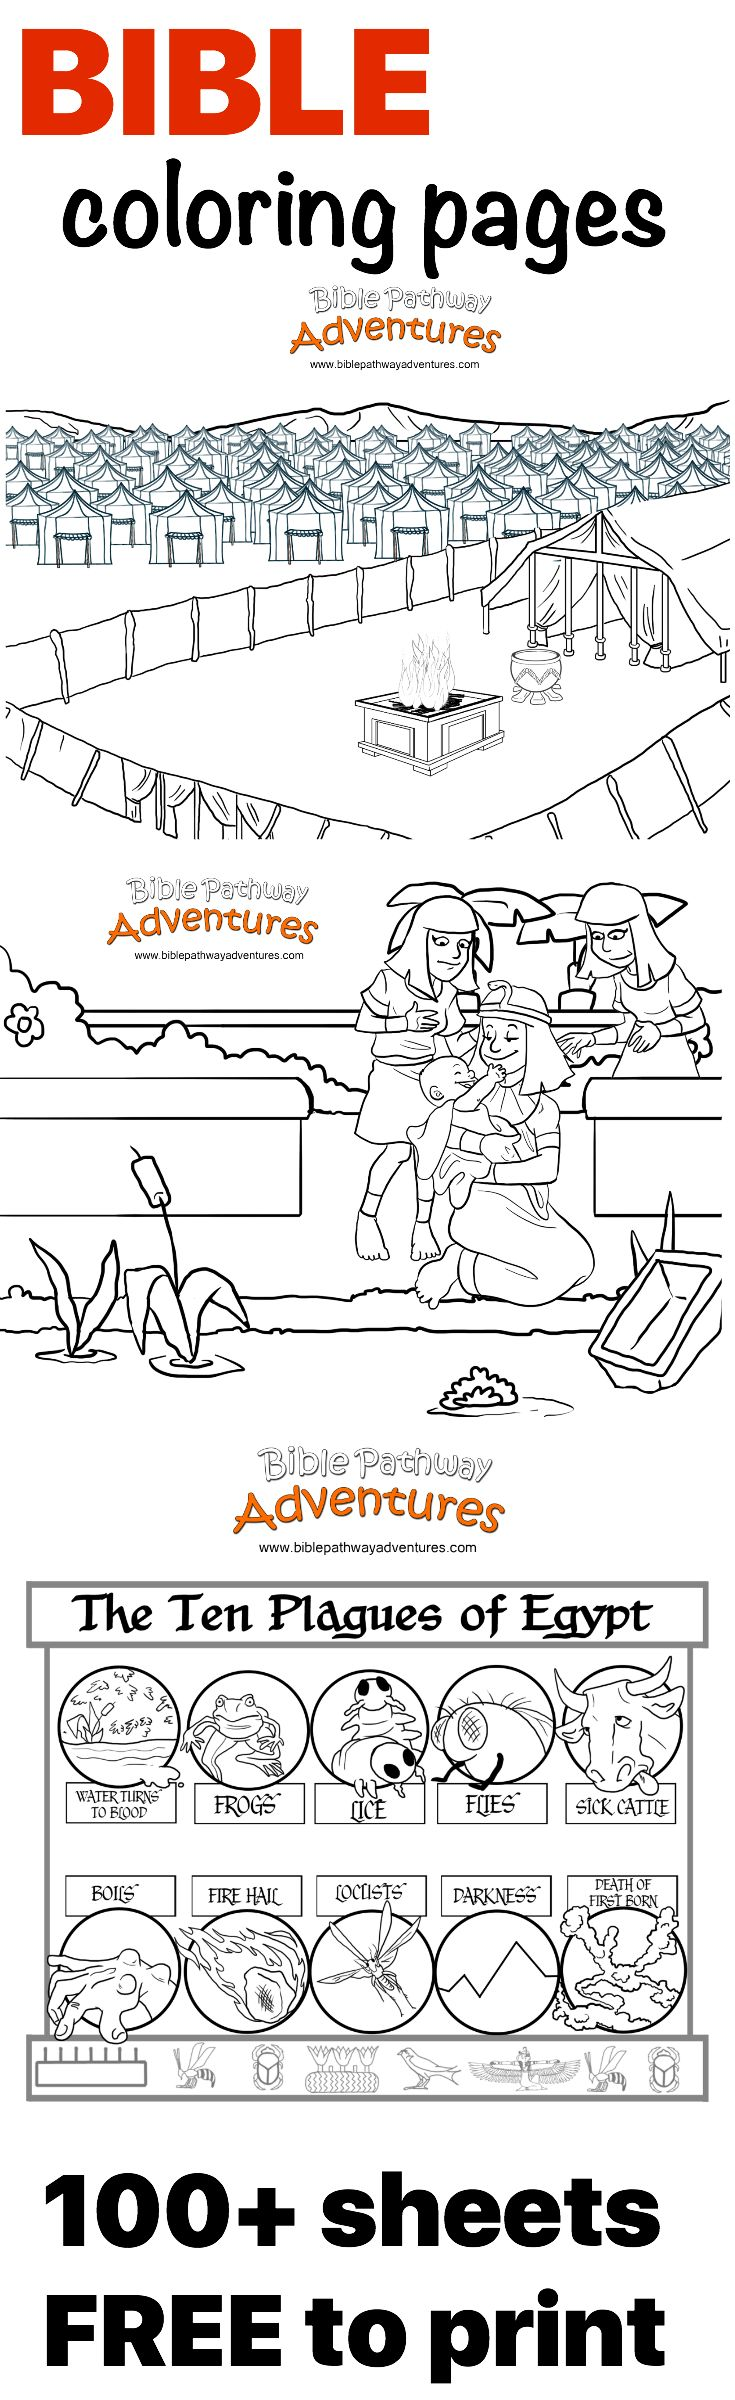 100 bible based coloring pages and worksheets free bible printables to